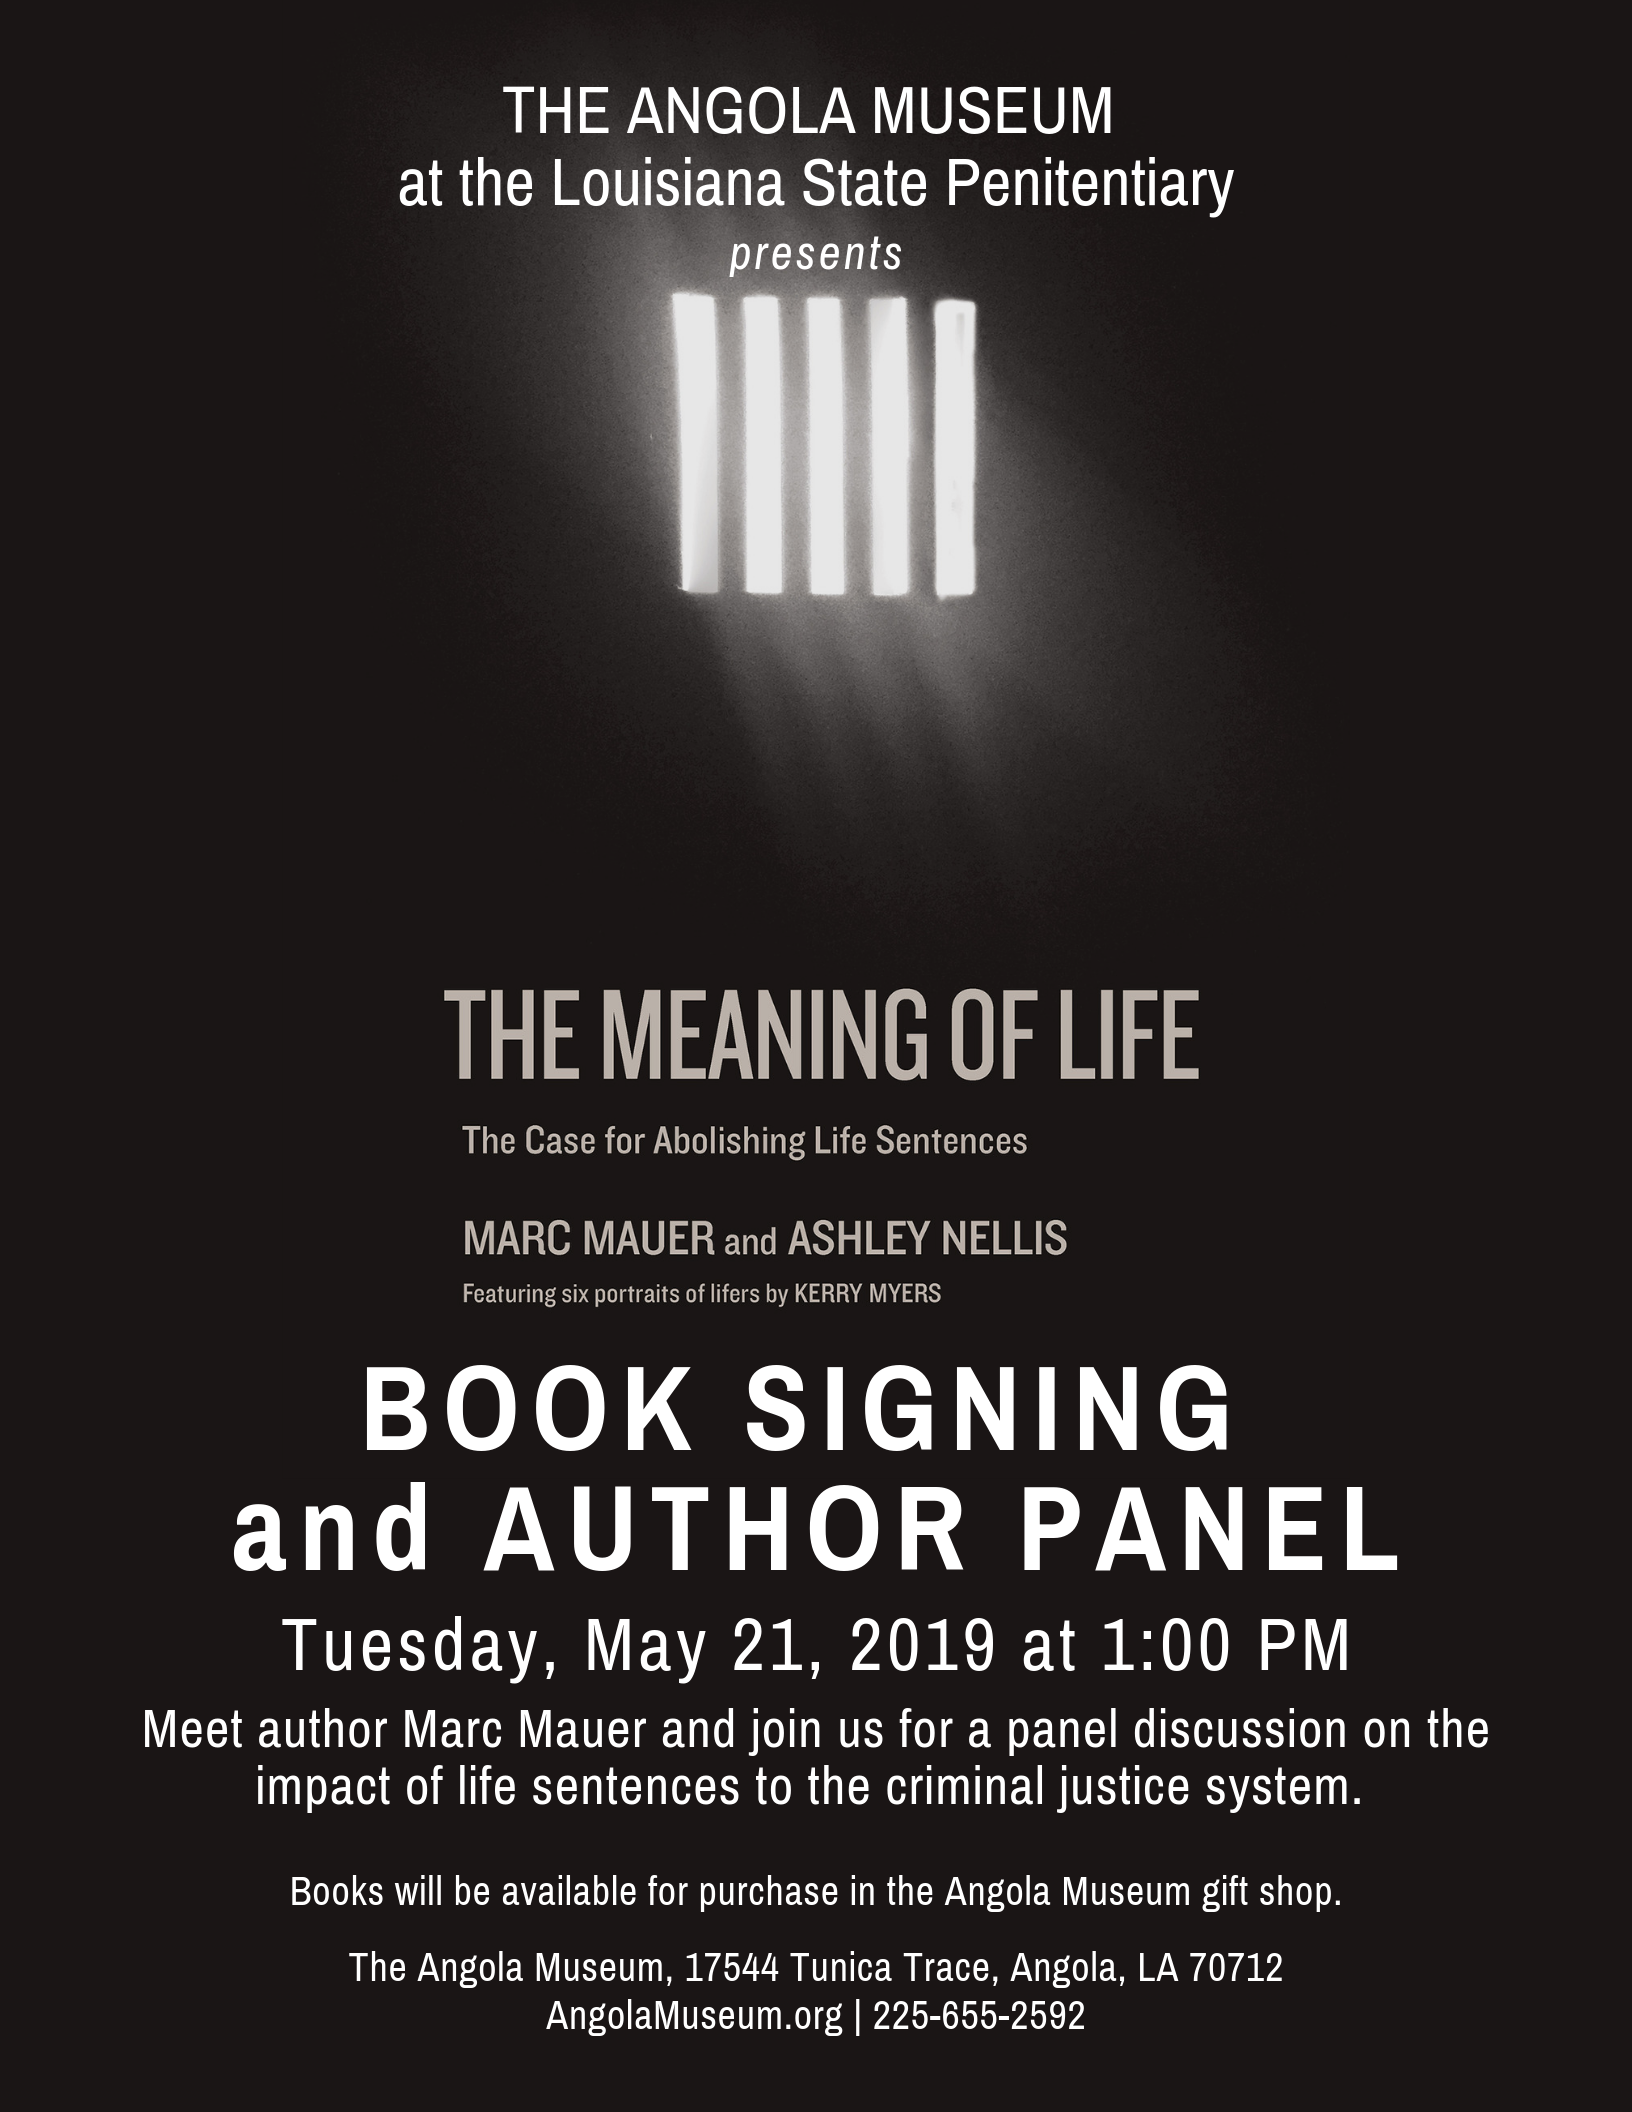 2019May21_MeaningOfLife_BookSigningFlyer_v4.png